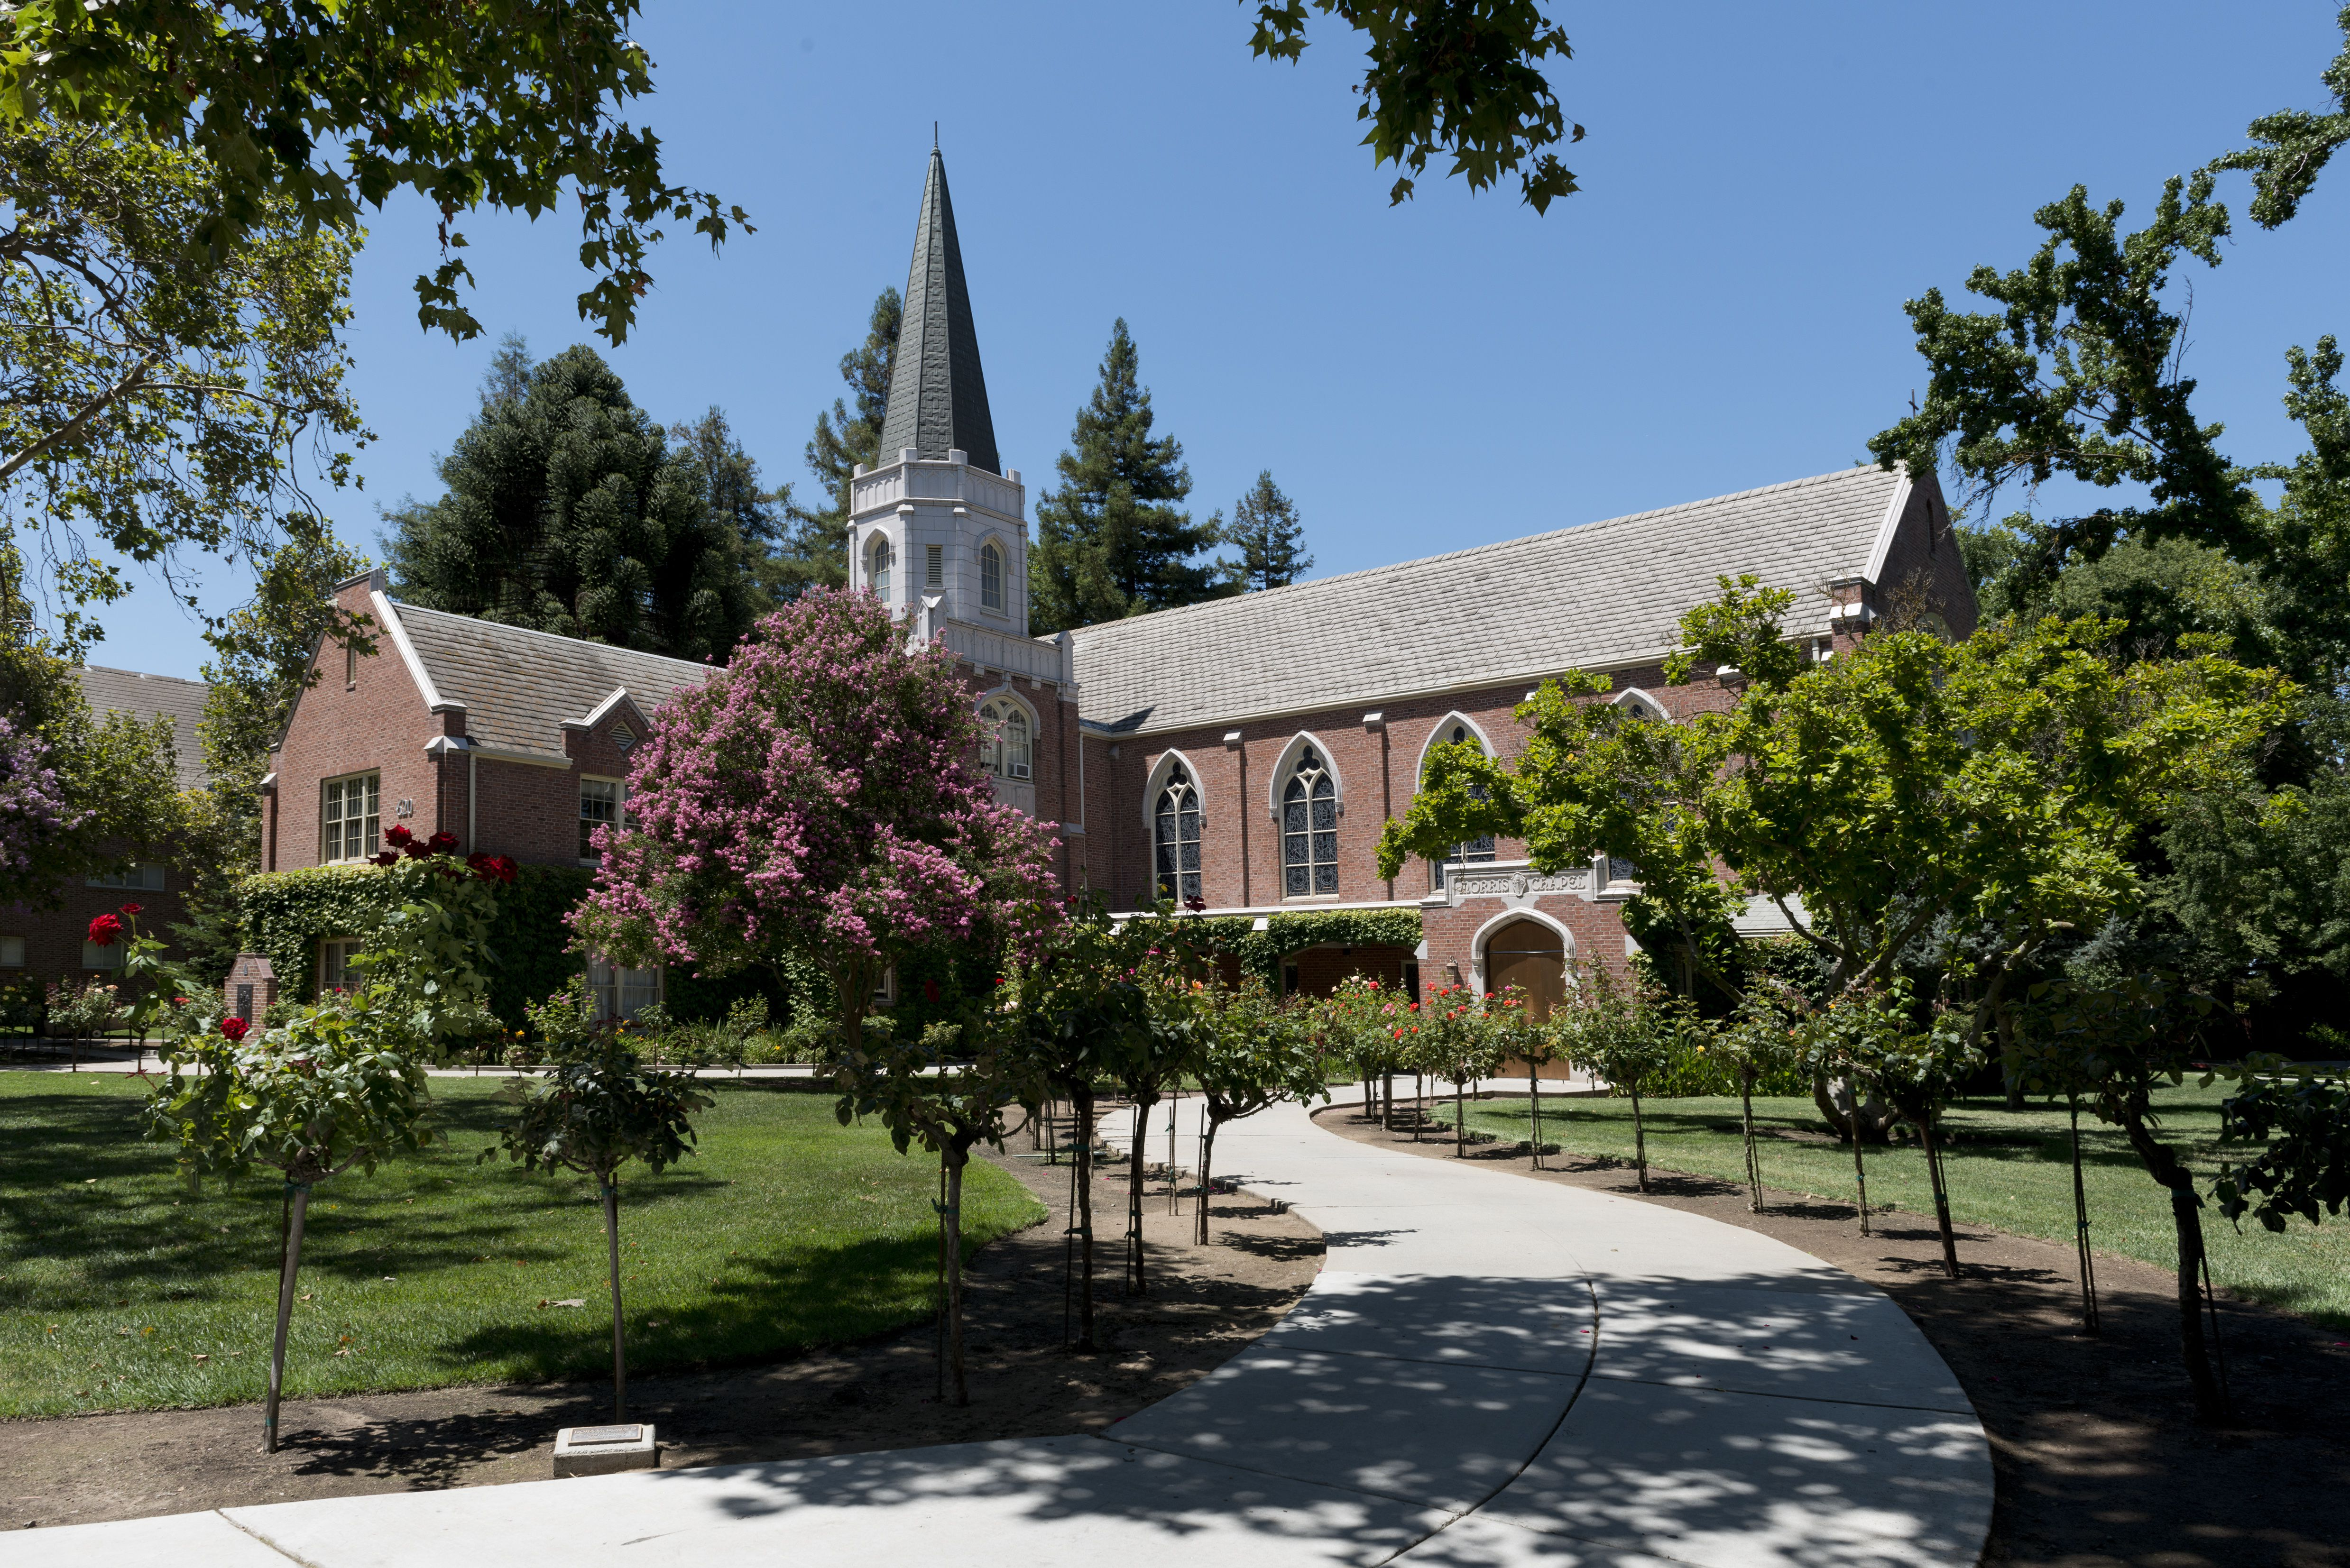 Morris Chapel at the University of the Pacific in Stockton, California